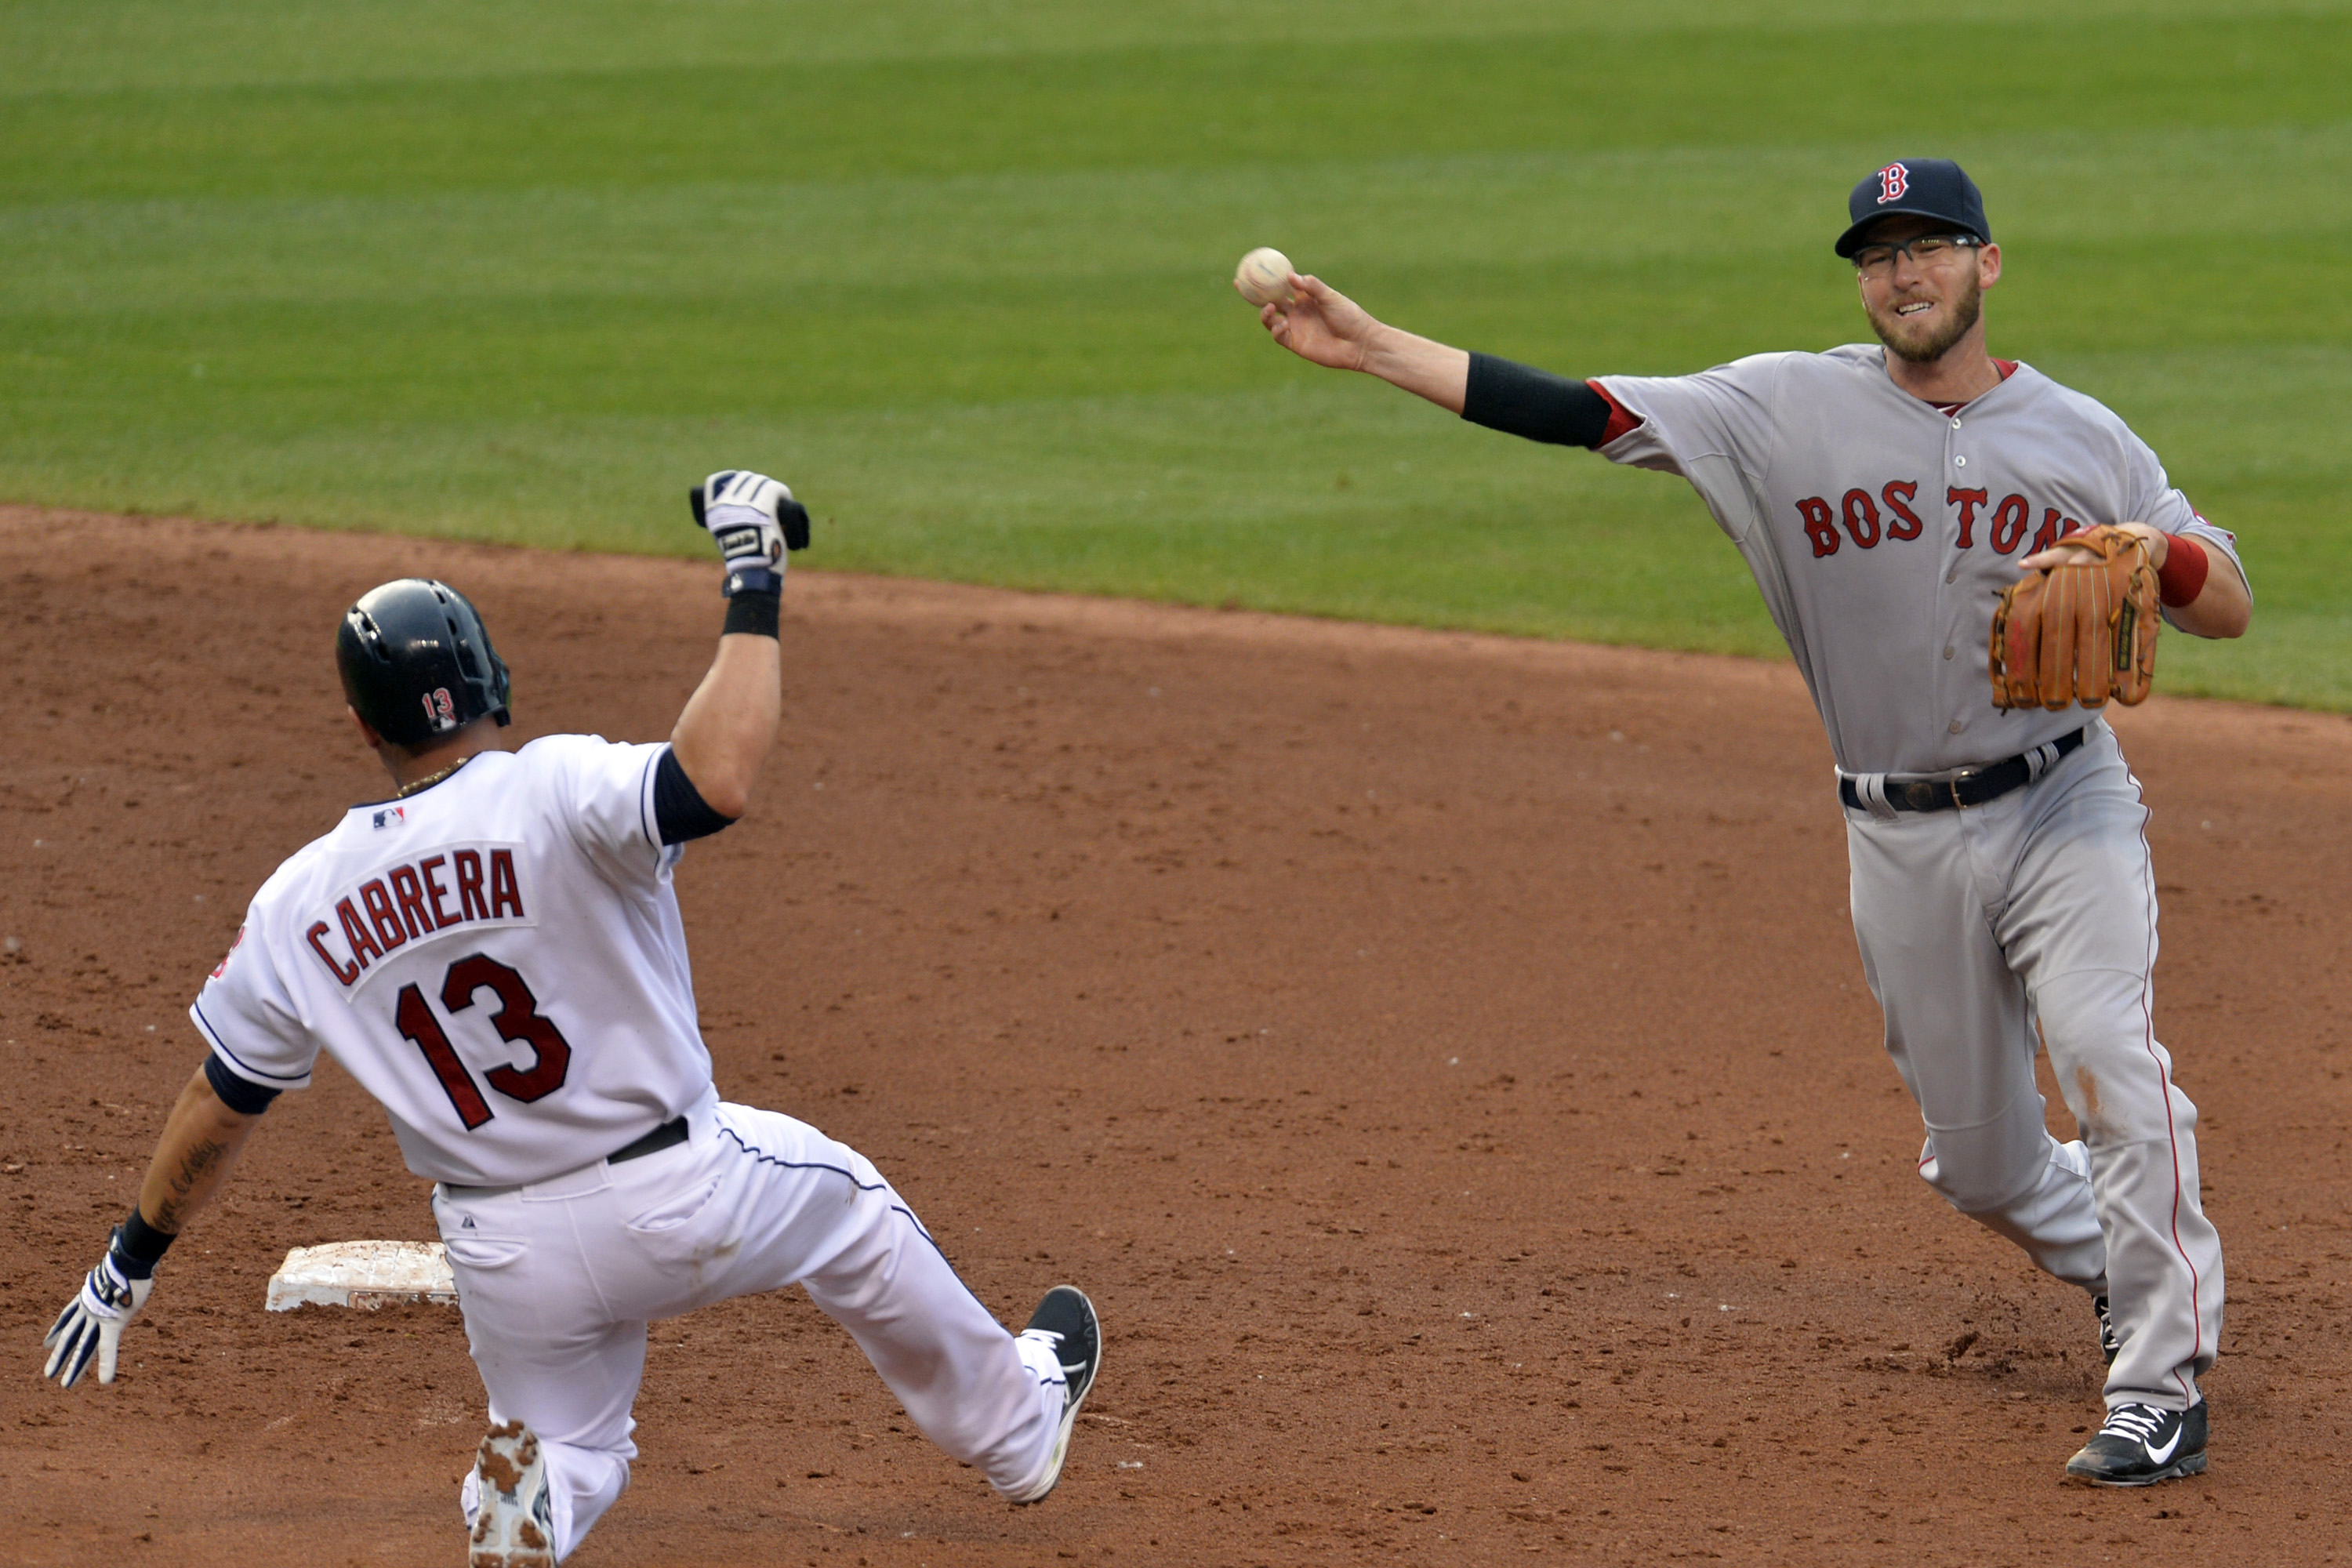 2014-06-03T003903Z_1332665089_NOCID_RTRMADP_3_MLB-BOSTON-RED-SOX-AT-CLEVELAND-INDIANS.jpg